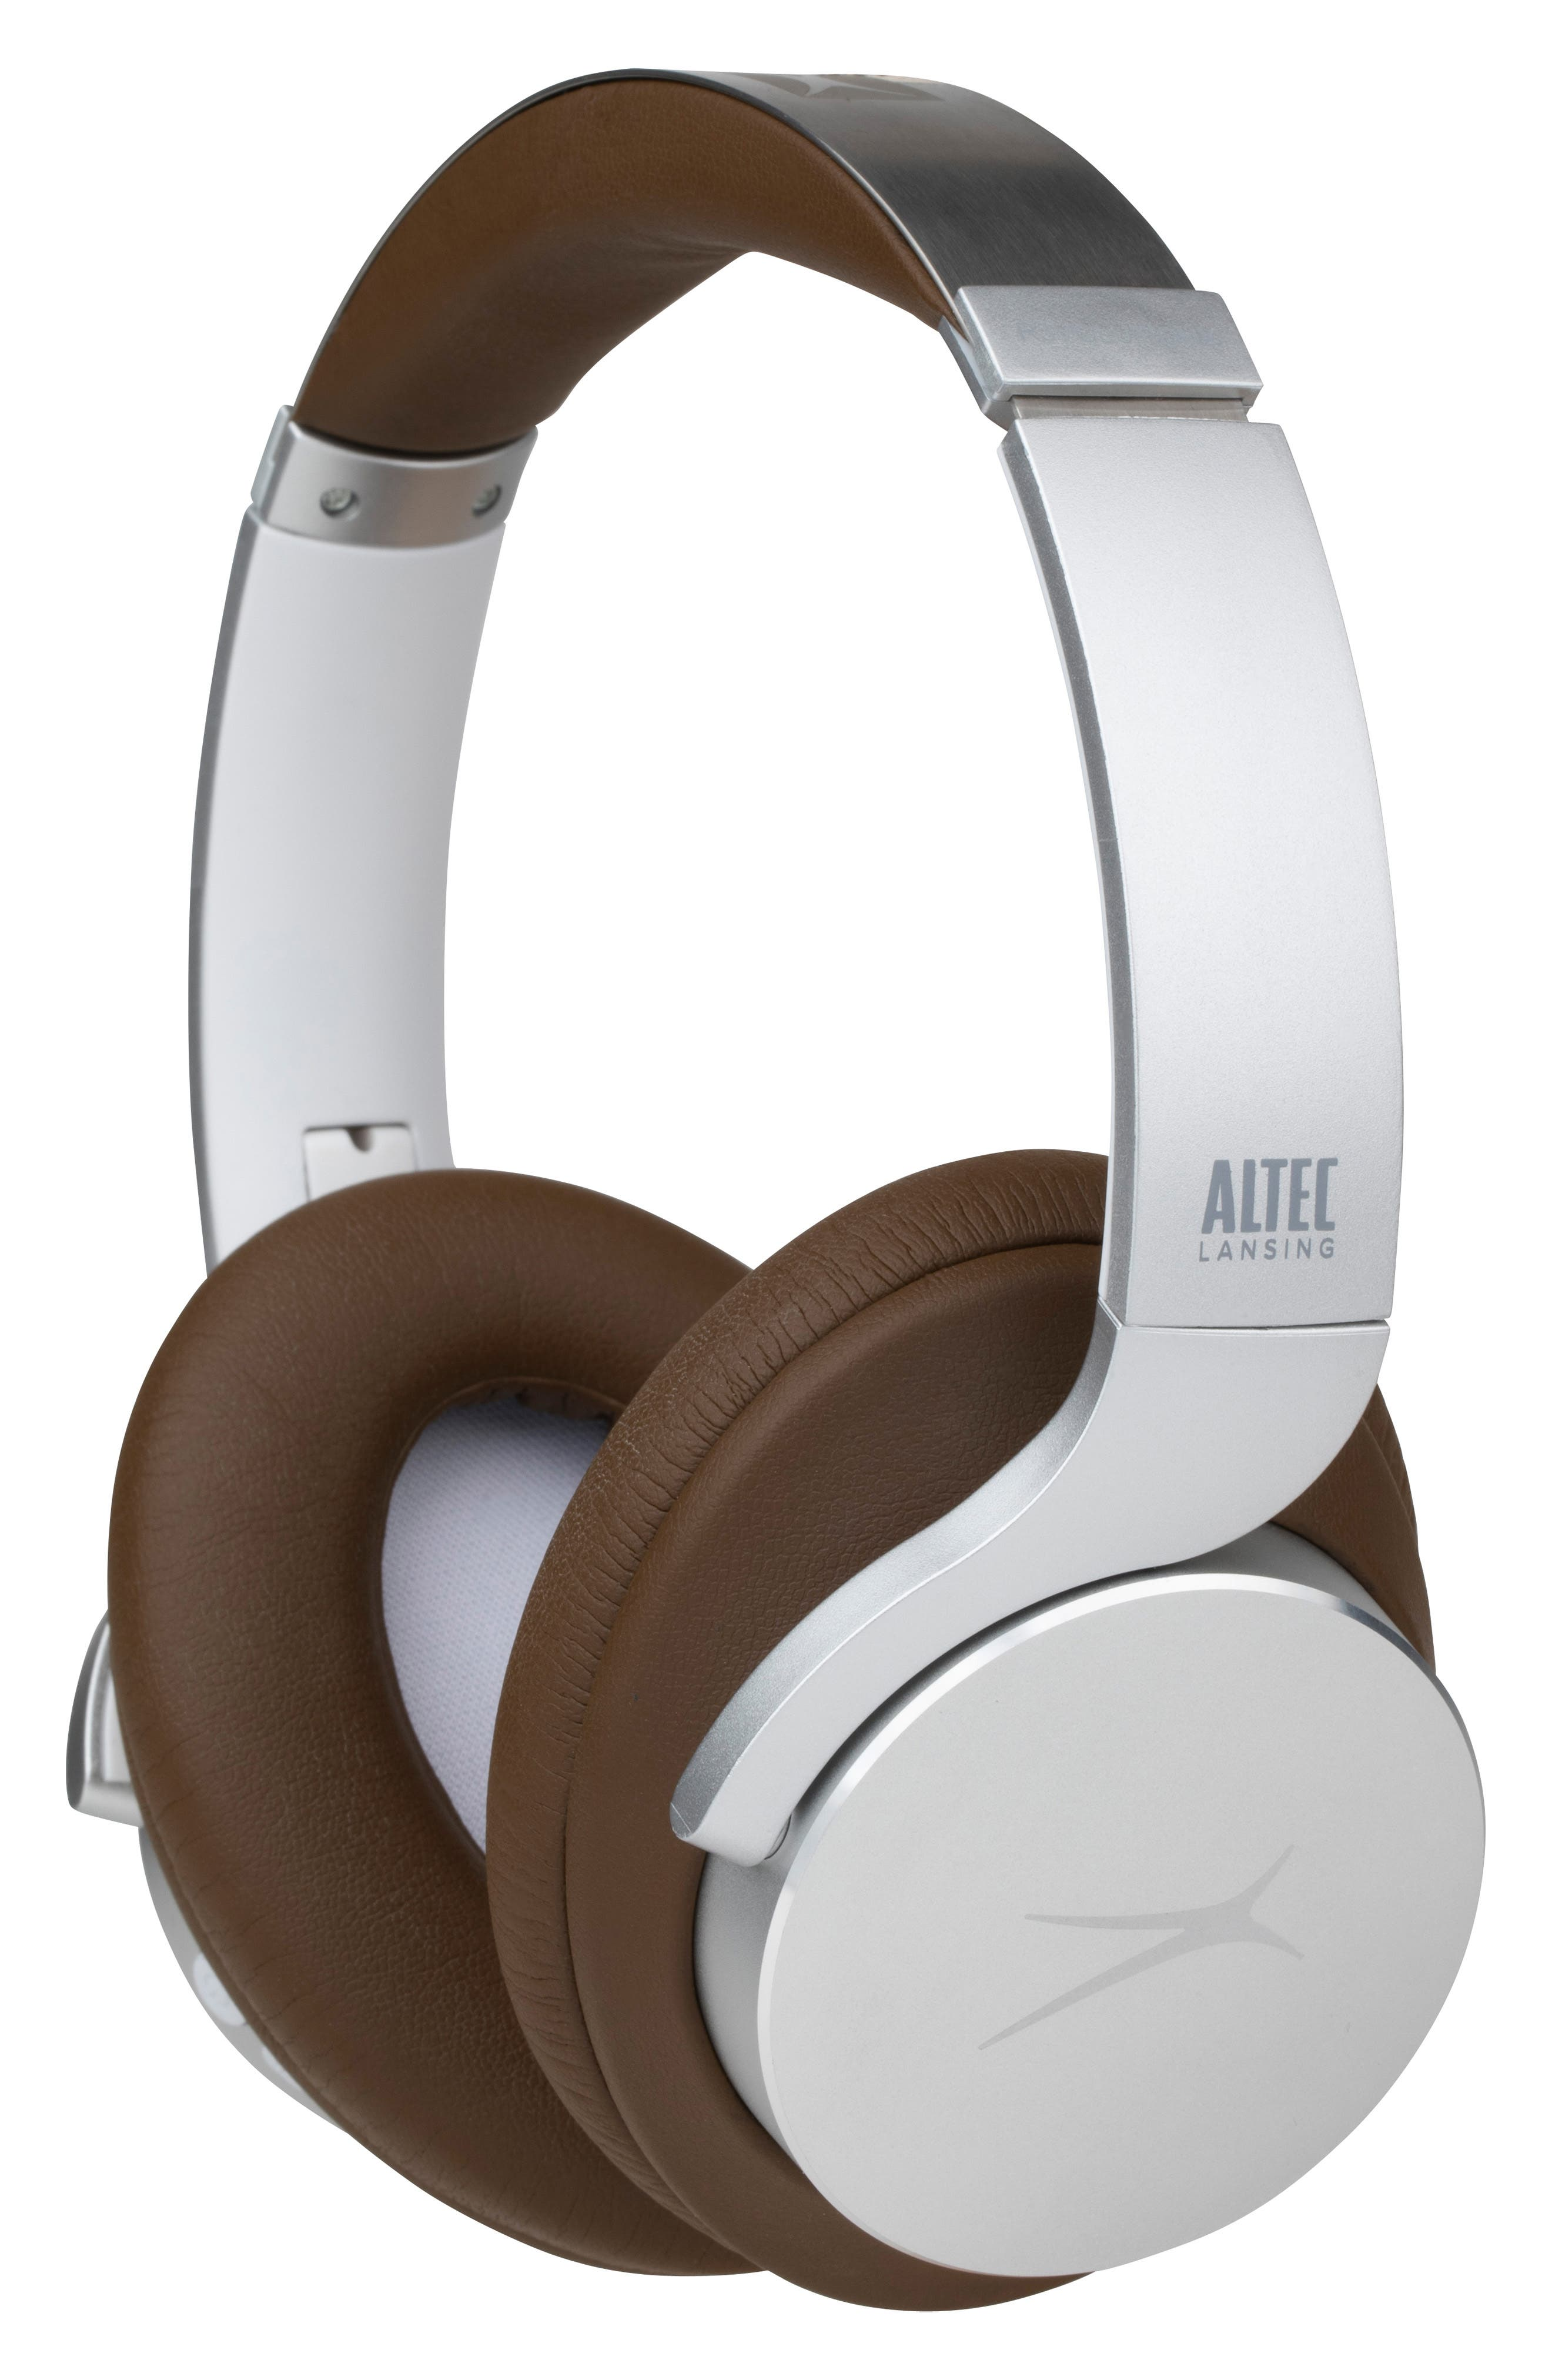 Active Noise Cancellation Technology blocks out distractions in these full-coverage headphones with one-push controls. Headphone style: Over-ear with cushioned, comfortable cups for all-day listening. Includes: Headphones, AUX cable and USB charging cableWireless connectivity: Compatible with any Bluetooth deviceSystem compatiblity: Voice Assistant Compatibility lets you control any device with voice assistant software Style Name: Altec Lansing